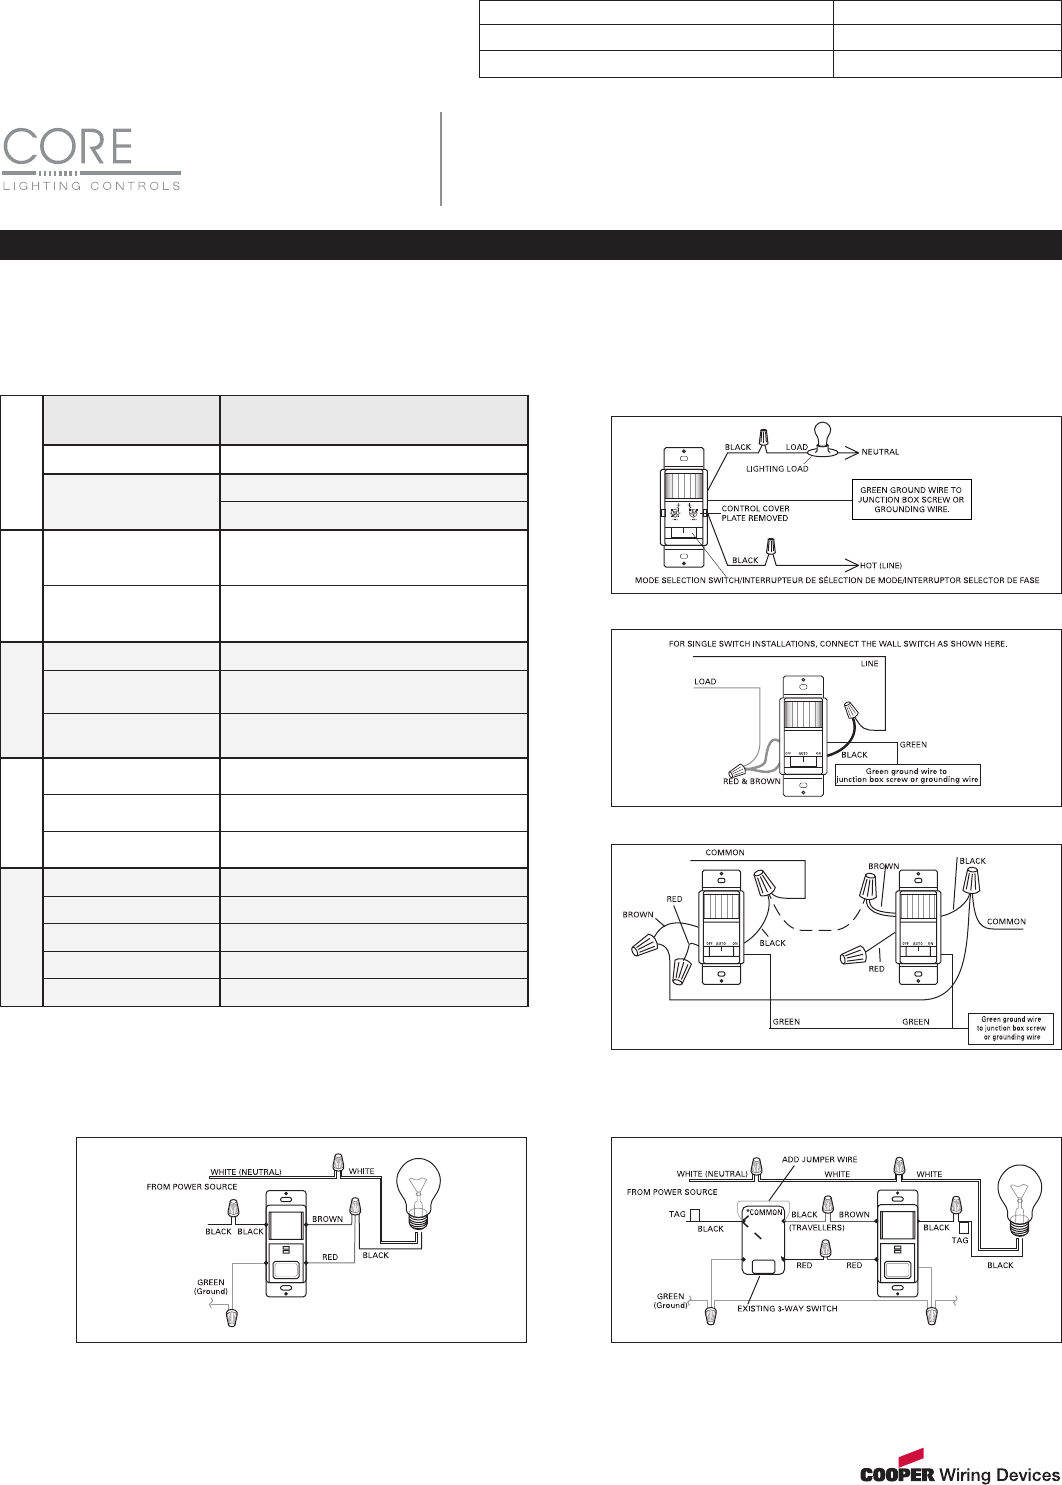 Cooper Motion Sensor Wiring Devices Diagrams Cooperwiringdevicescom2 Lcsdspsh1 0410